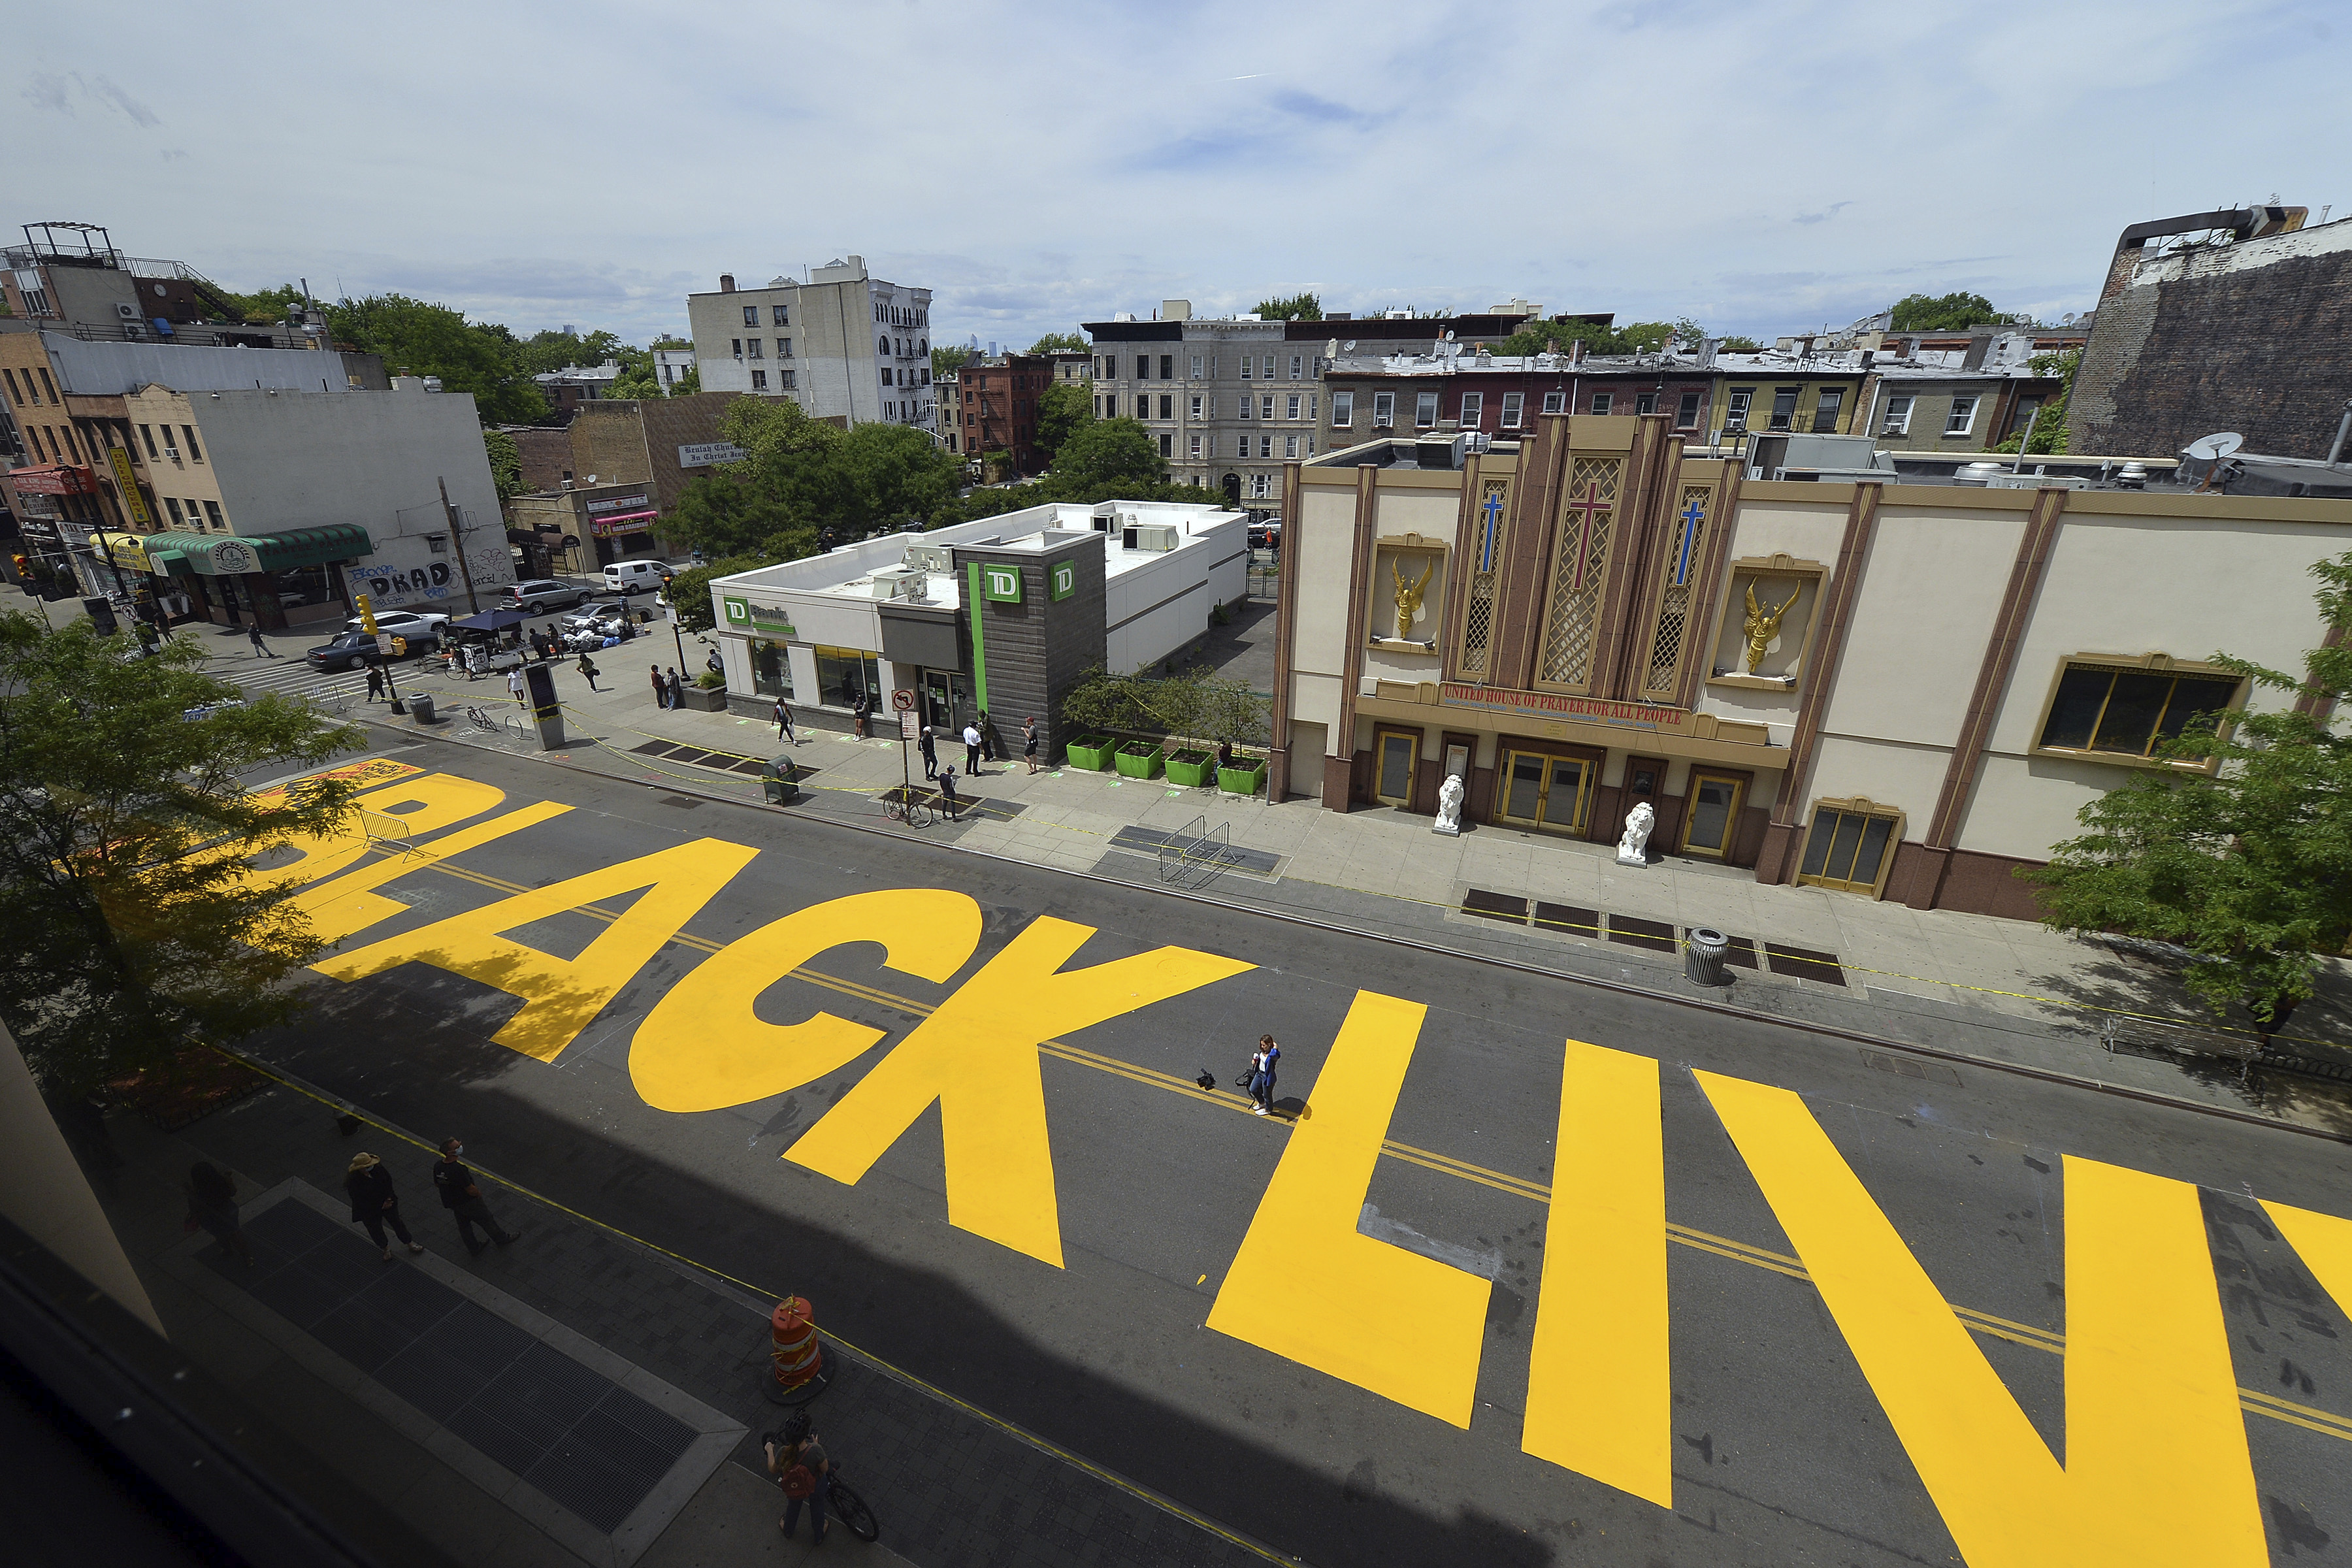 A view of  Black Lives Matter  painted in bright yellow in Brooklyn, New York, on June 15, 2020. The mural is similar to the one that was vandalized in Martinez, California on July 4, 2020.